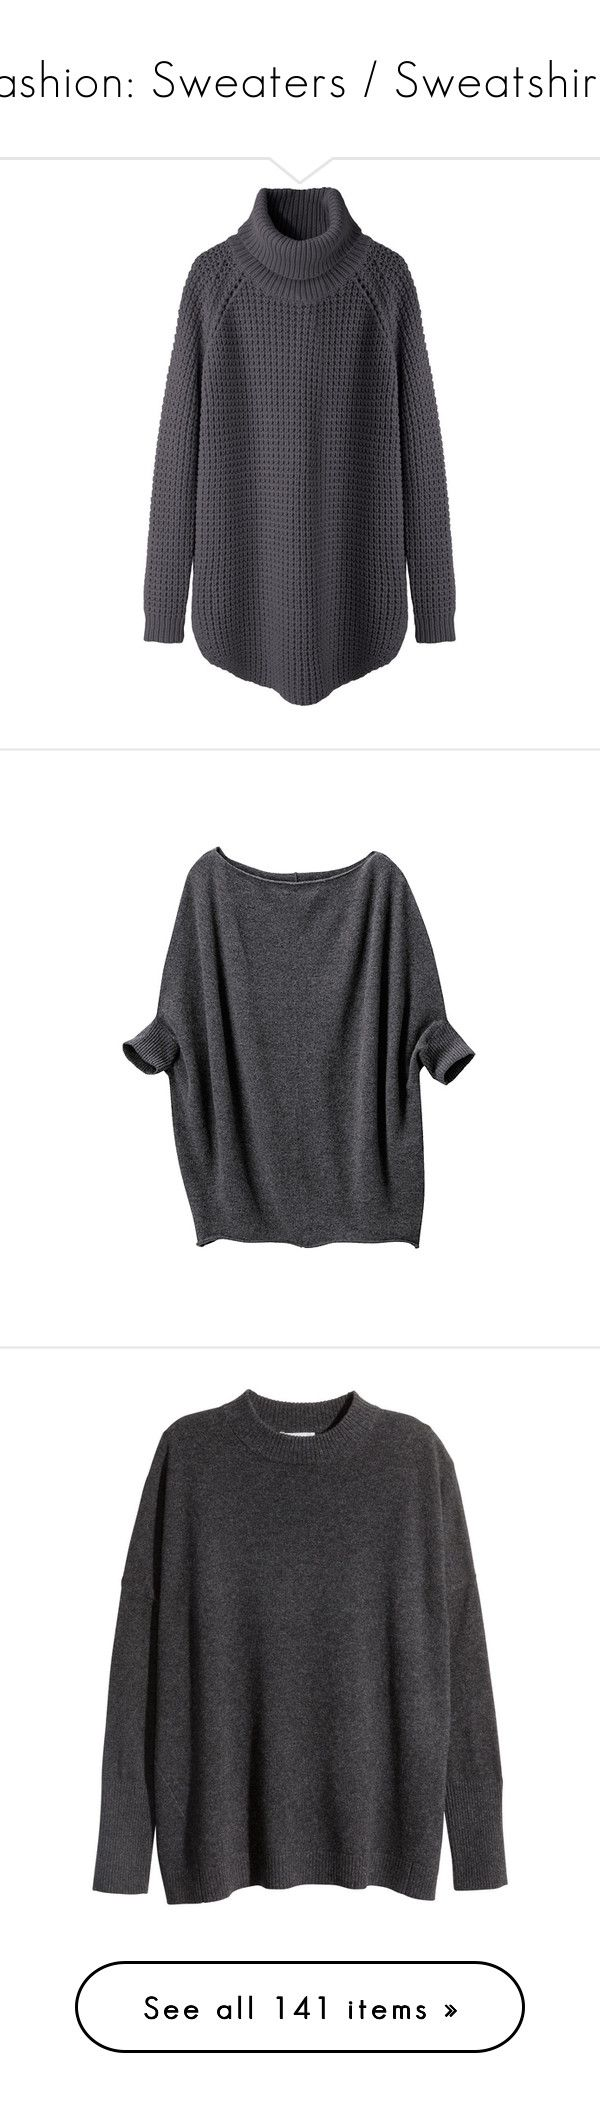 """""""Fashion: Sweaters / Sweatshirts"""" by katiasitems on Polyvore featuring tops, sweaters, shirts, jumpers, turtle neck sweater, chunky turtleneck sweater, turtleneck shirt, long chunky sweater, slouchy sweater and t-shirts"""